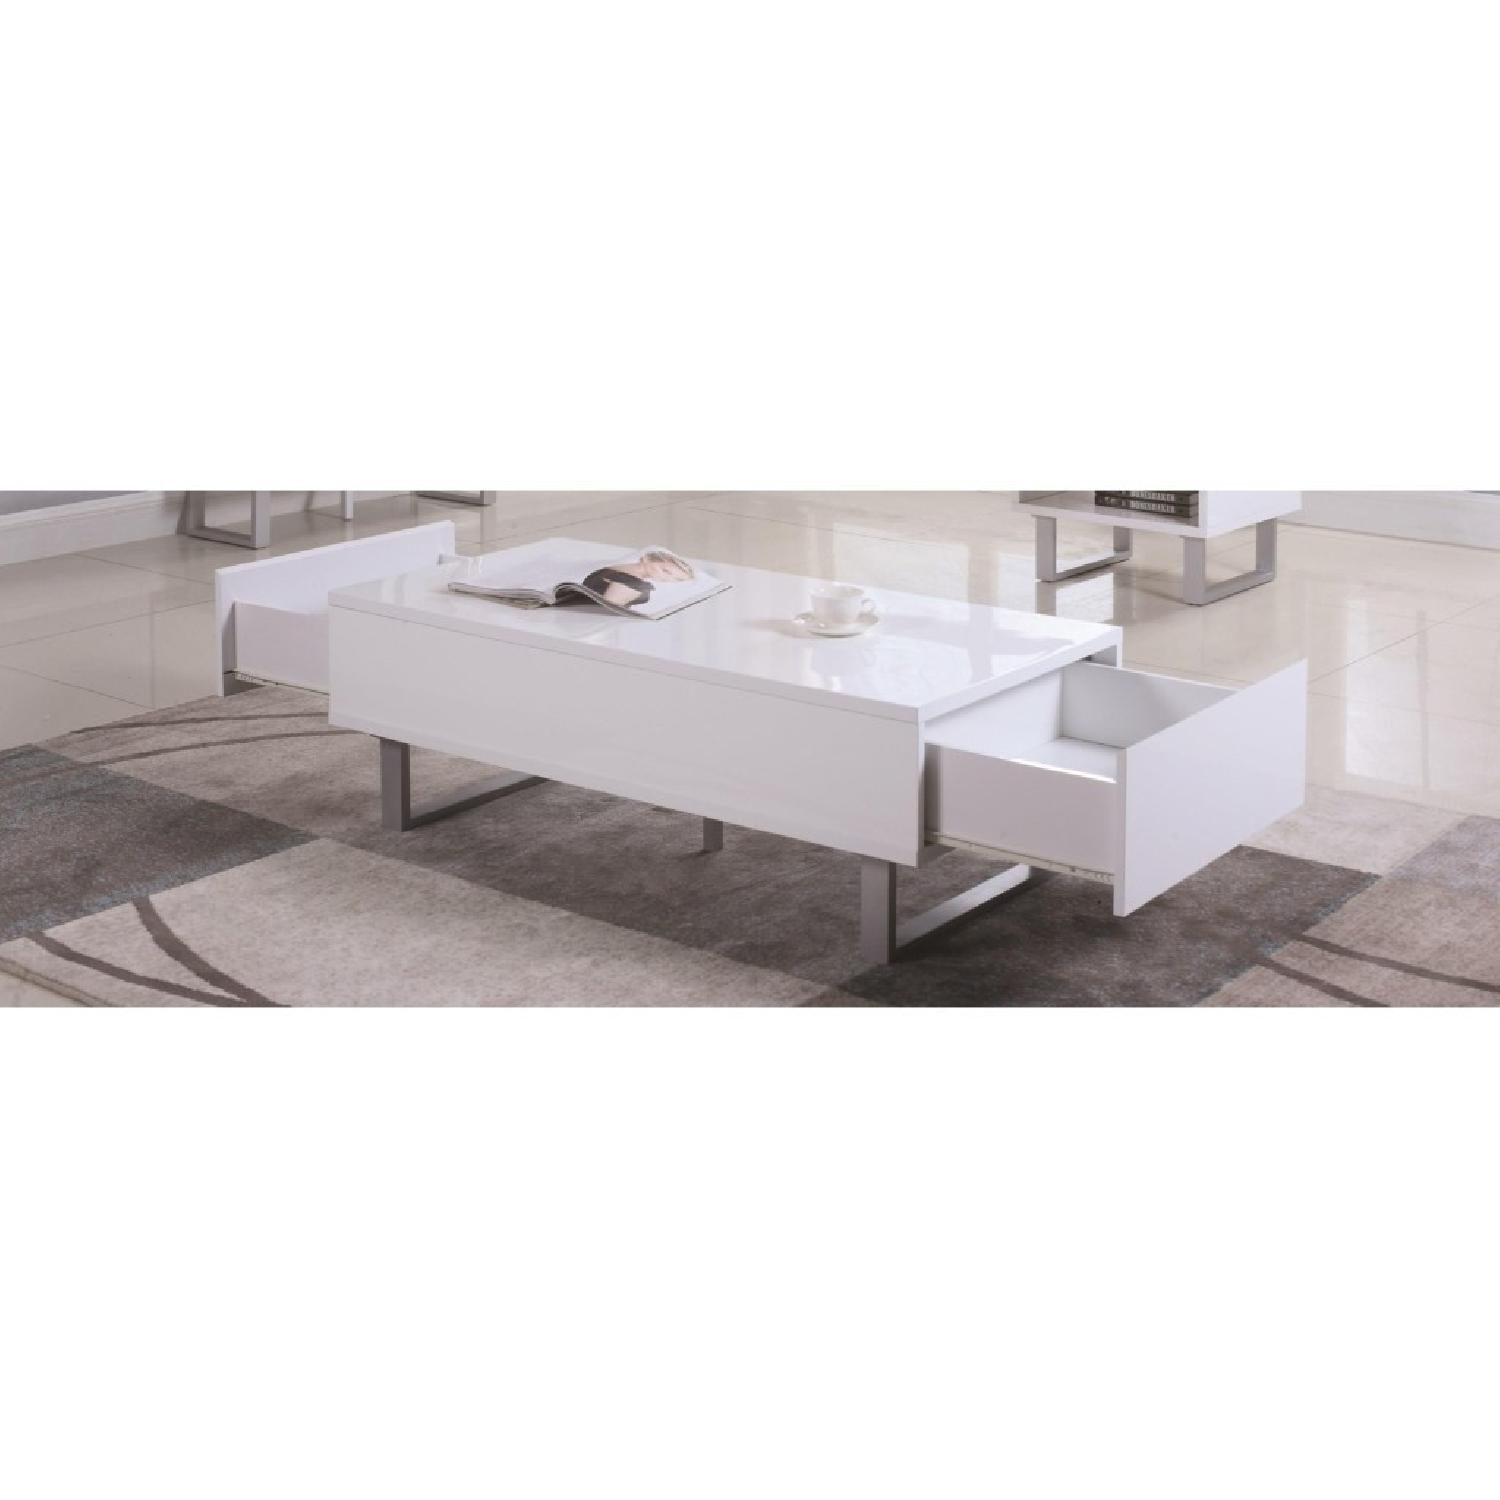 Contemporary Coffee Table in White Gloss w/ Drawers